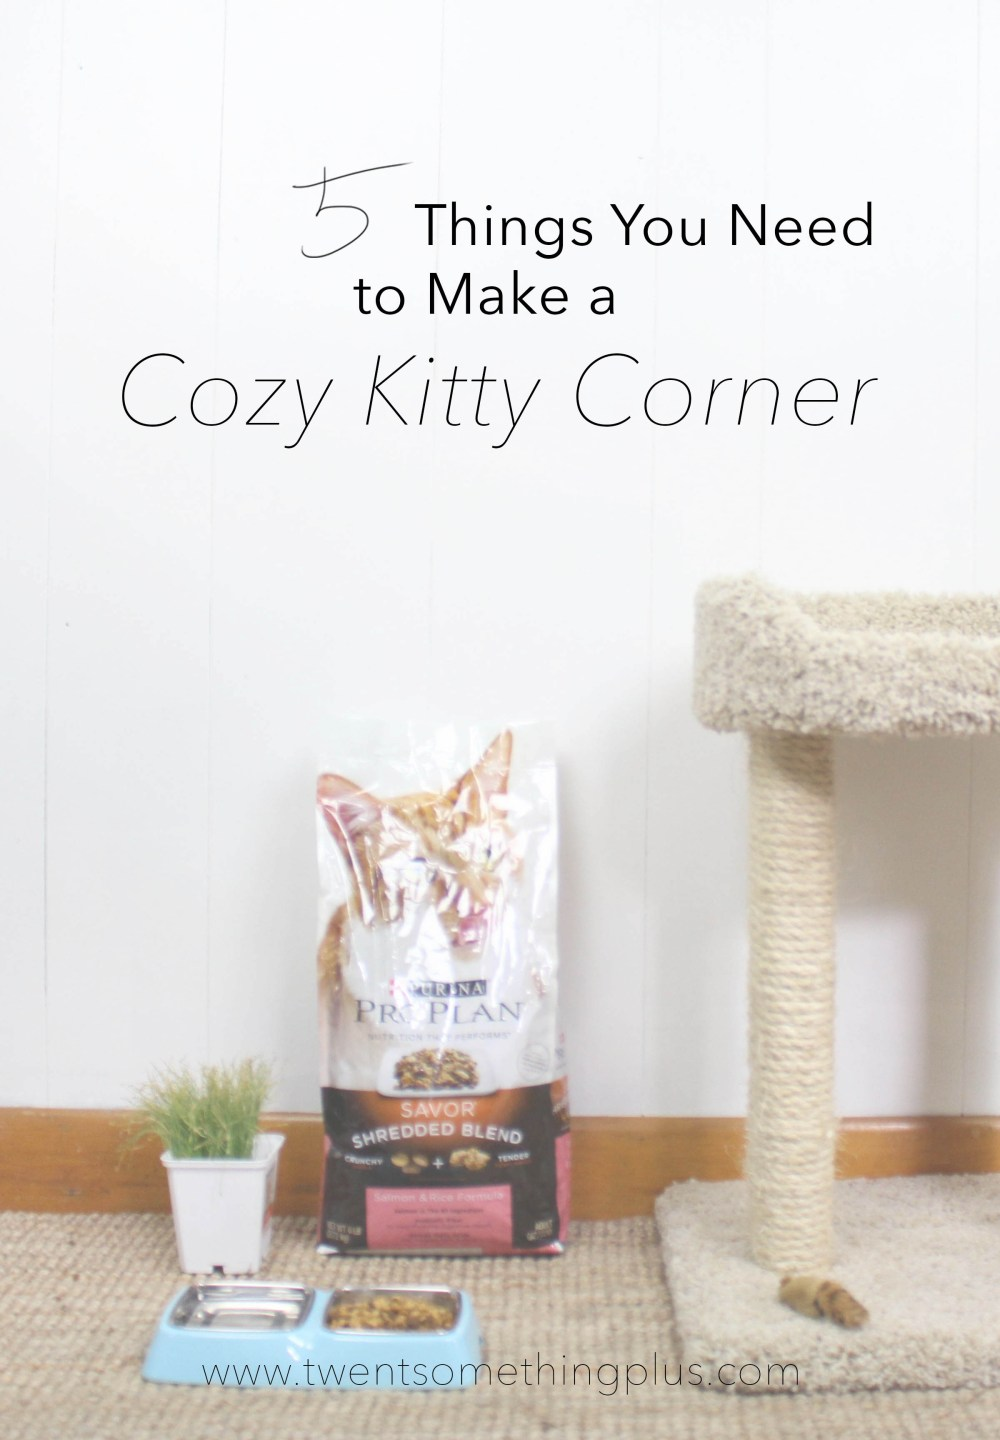 Cozy Kitty Corner